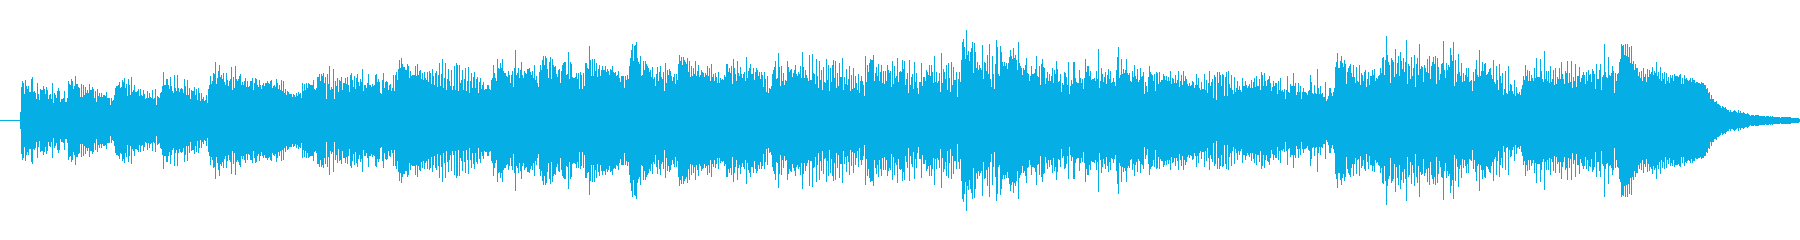 Refreshing piano opening jingle's reproduced waveform